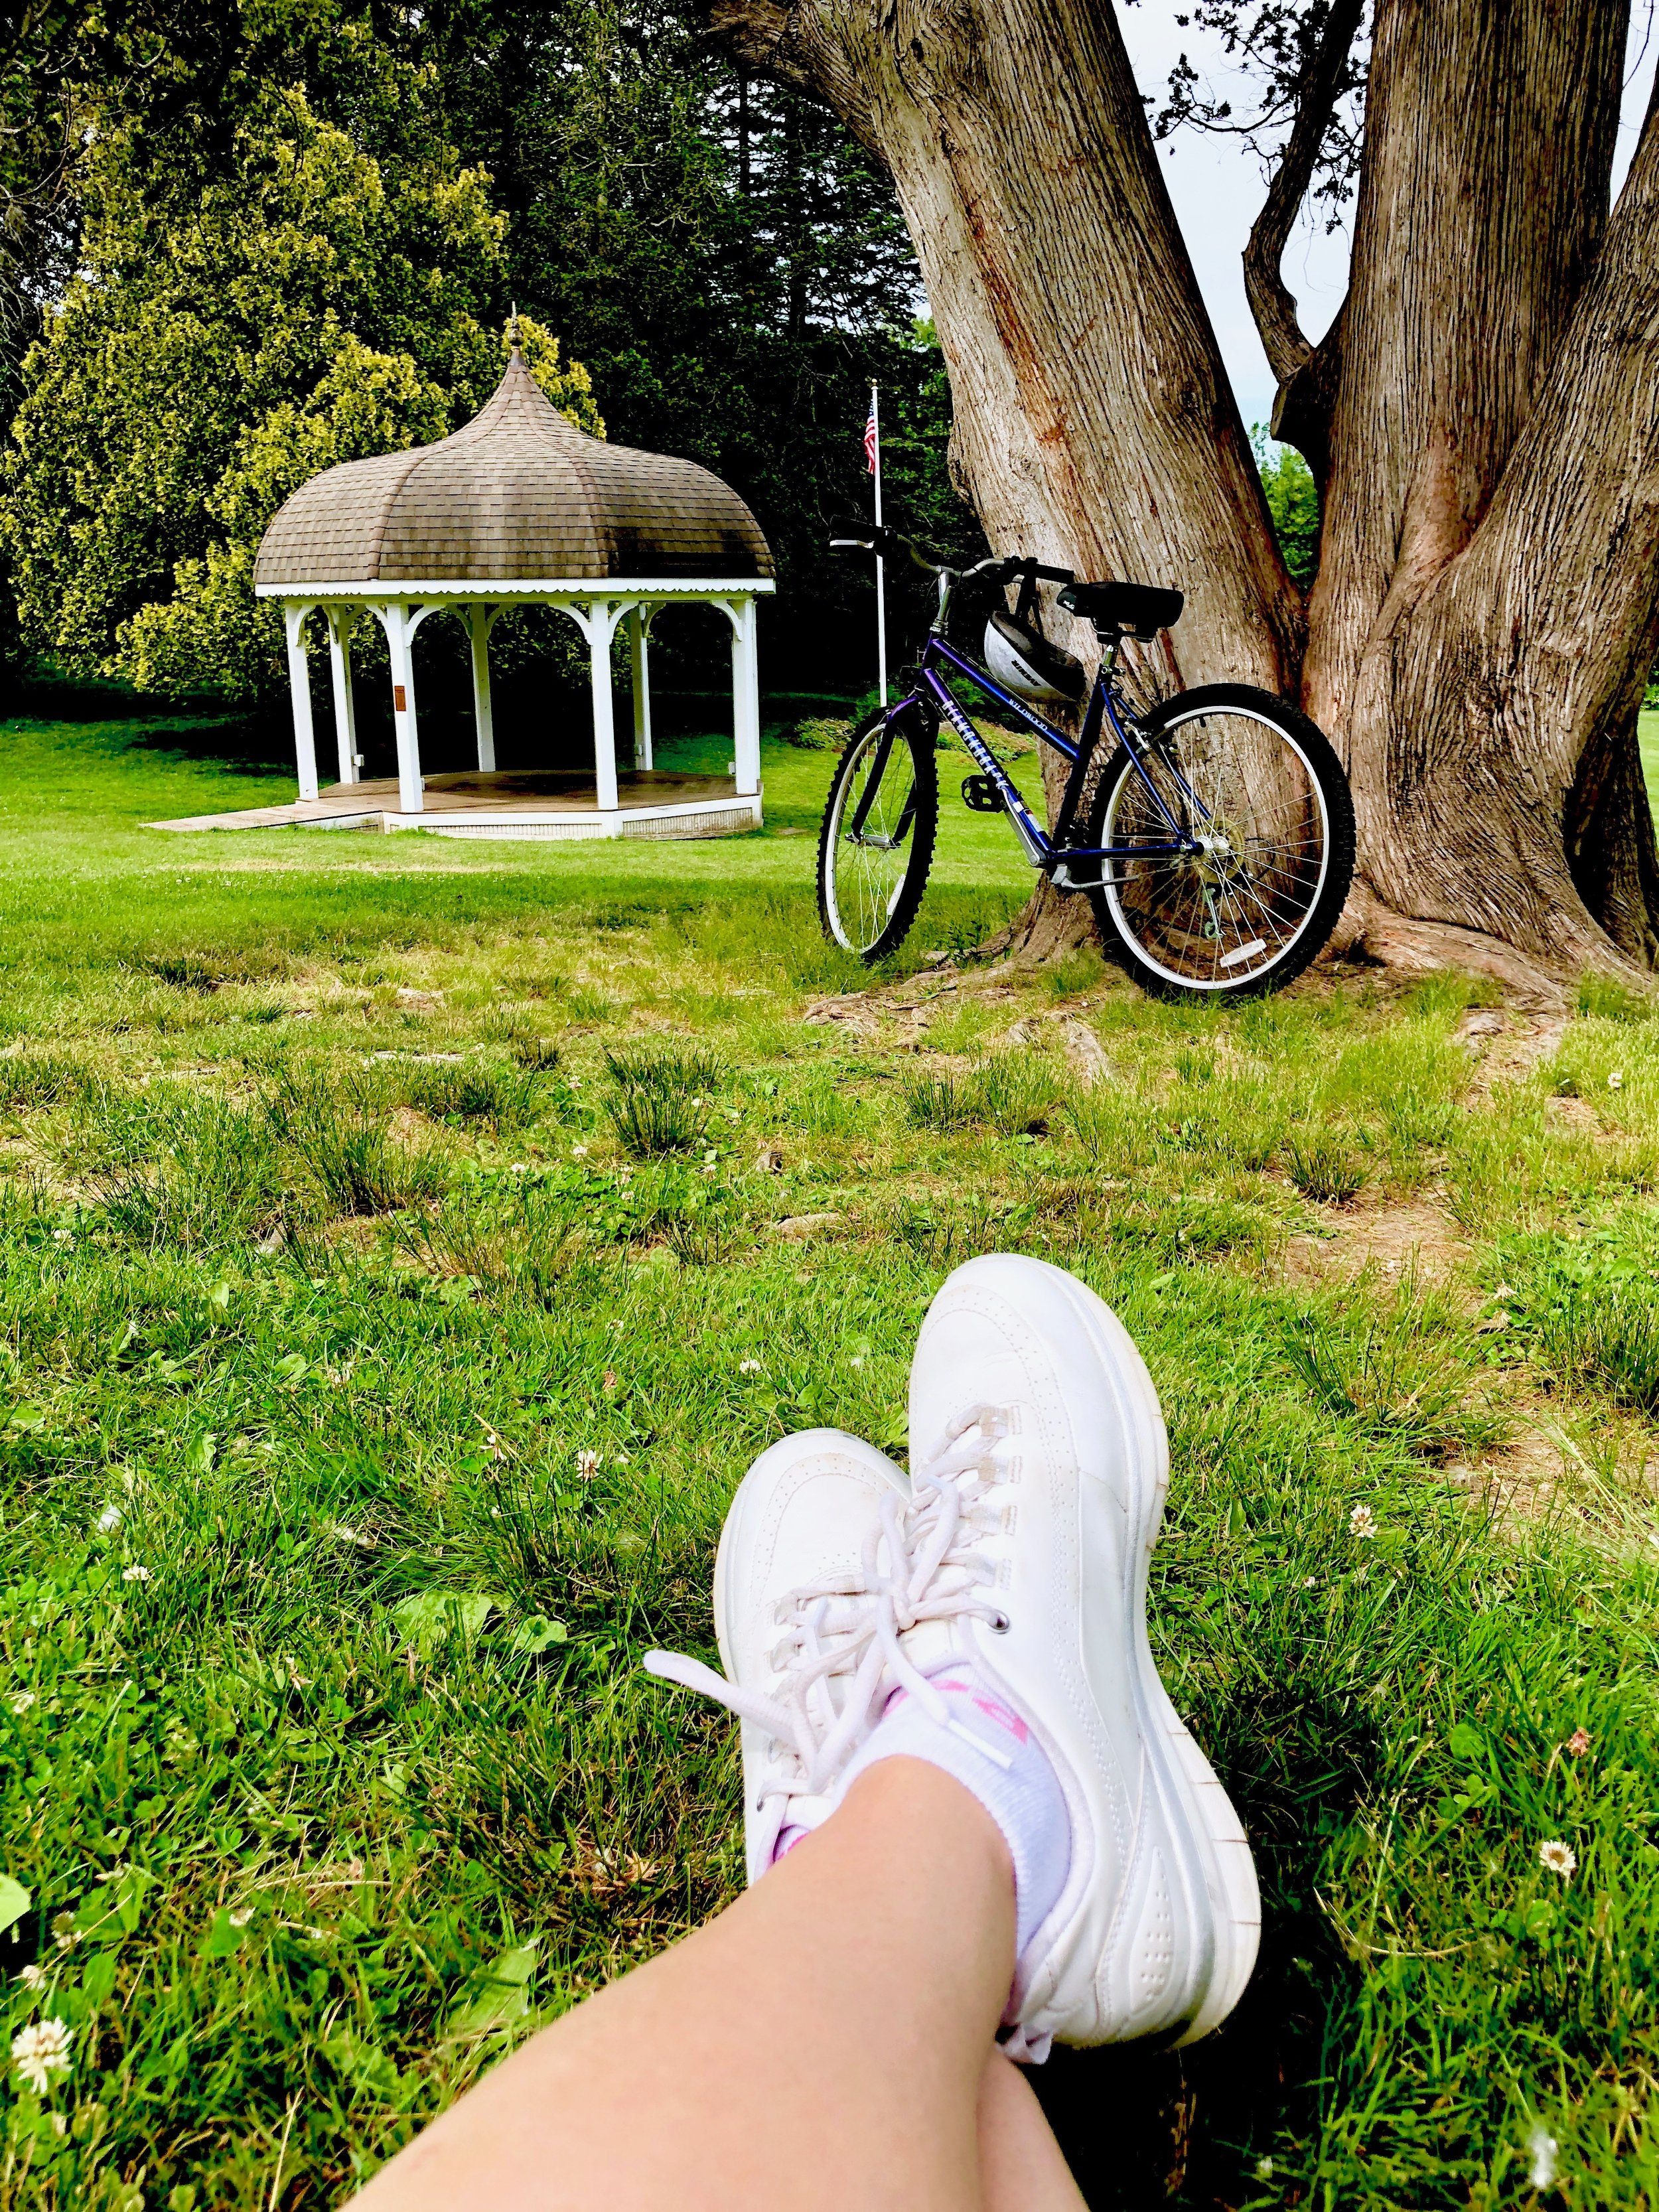 Taking a break by the band stand after an early morning bike ride. My  white skechers  are used to walking, but I think biking is going to be happening a lot more!